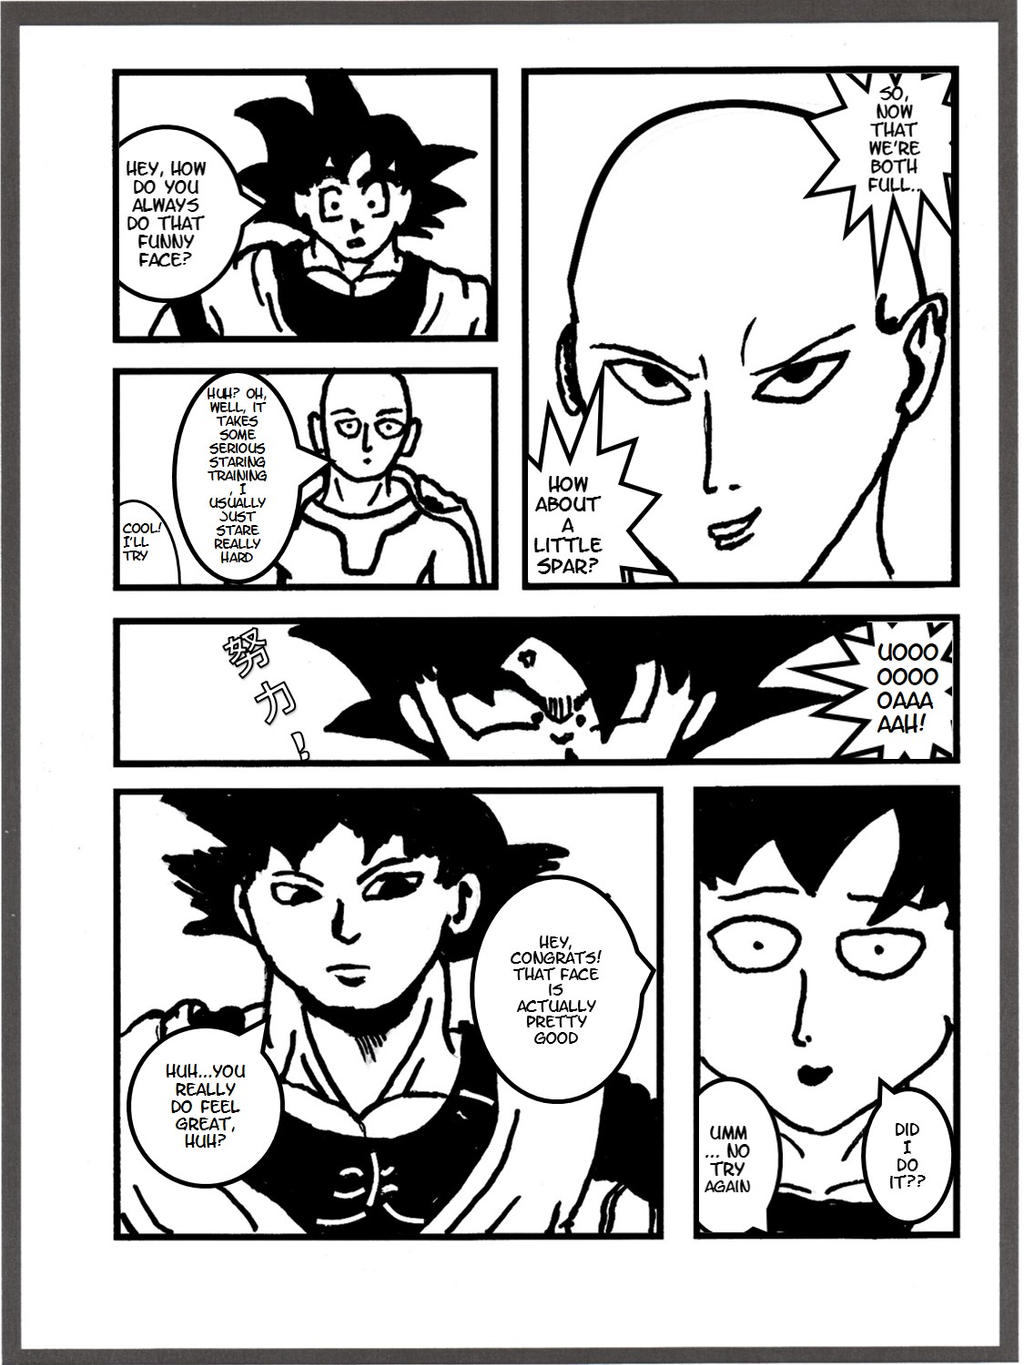 Goku vs Saitama - Serious Staring Training by Fedexassassin on DeviantArt